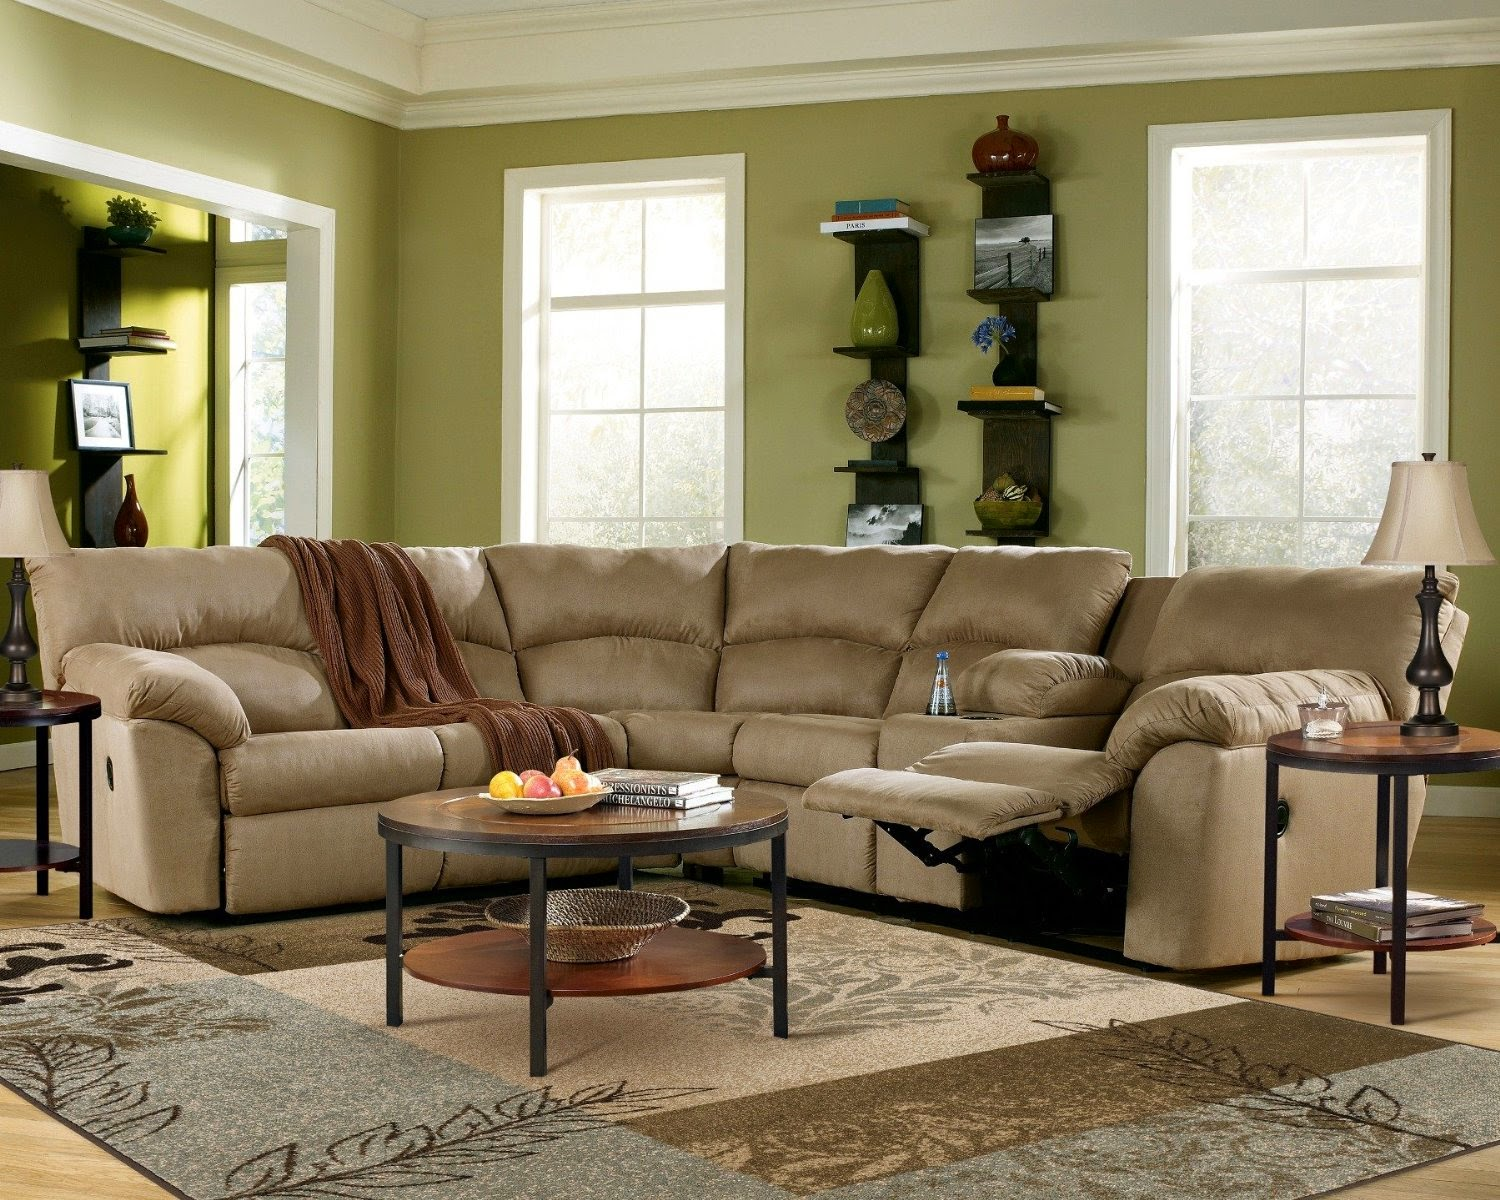 Sofa Set On Sale Curved Sofa Furniture Reviews Curved Leather Sofa Recliner